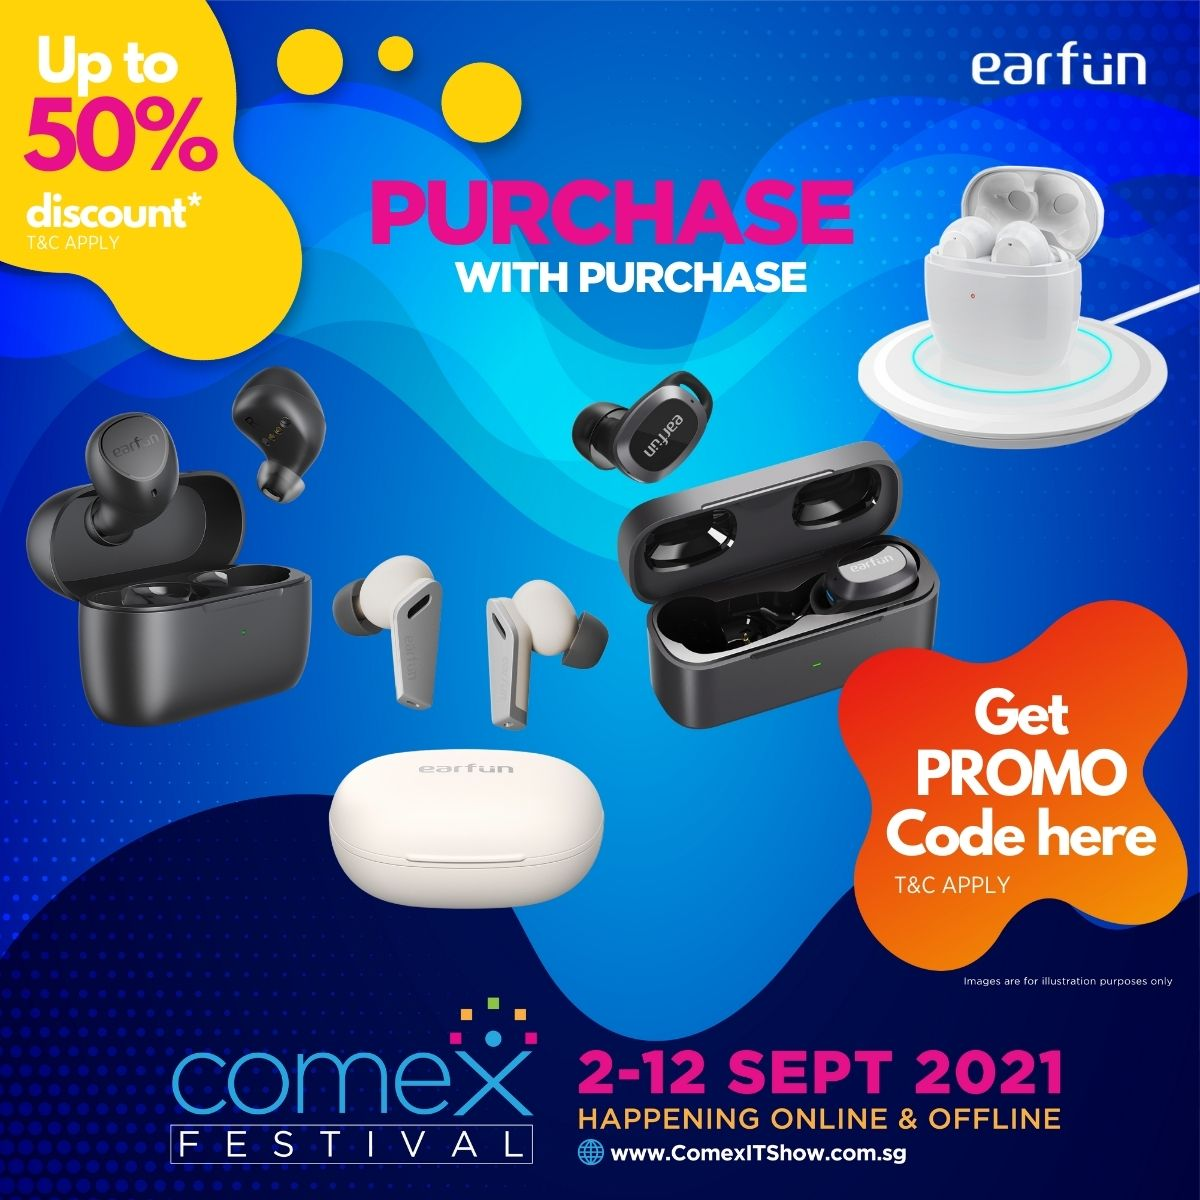 Earfun Purchase with Purchase (PwP) deals